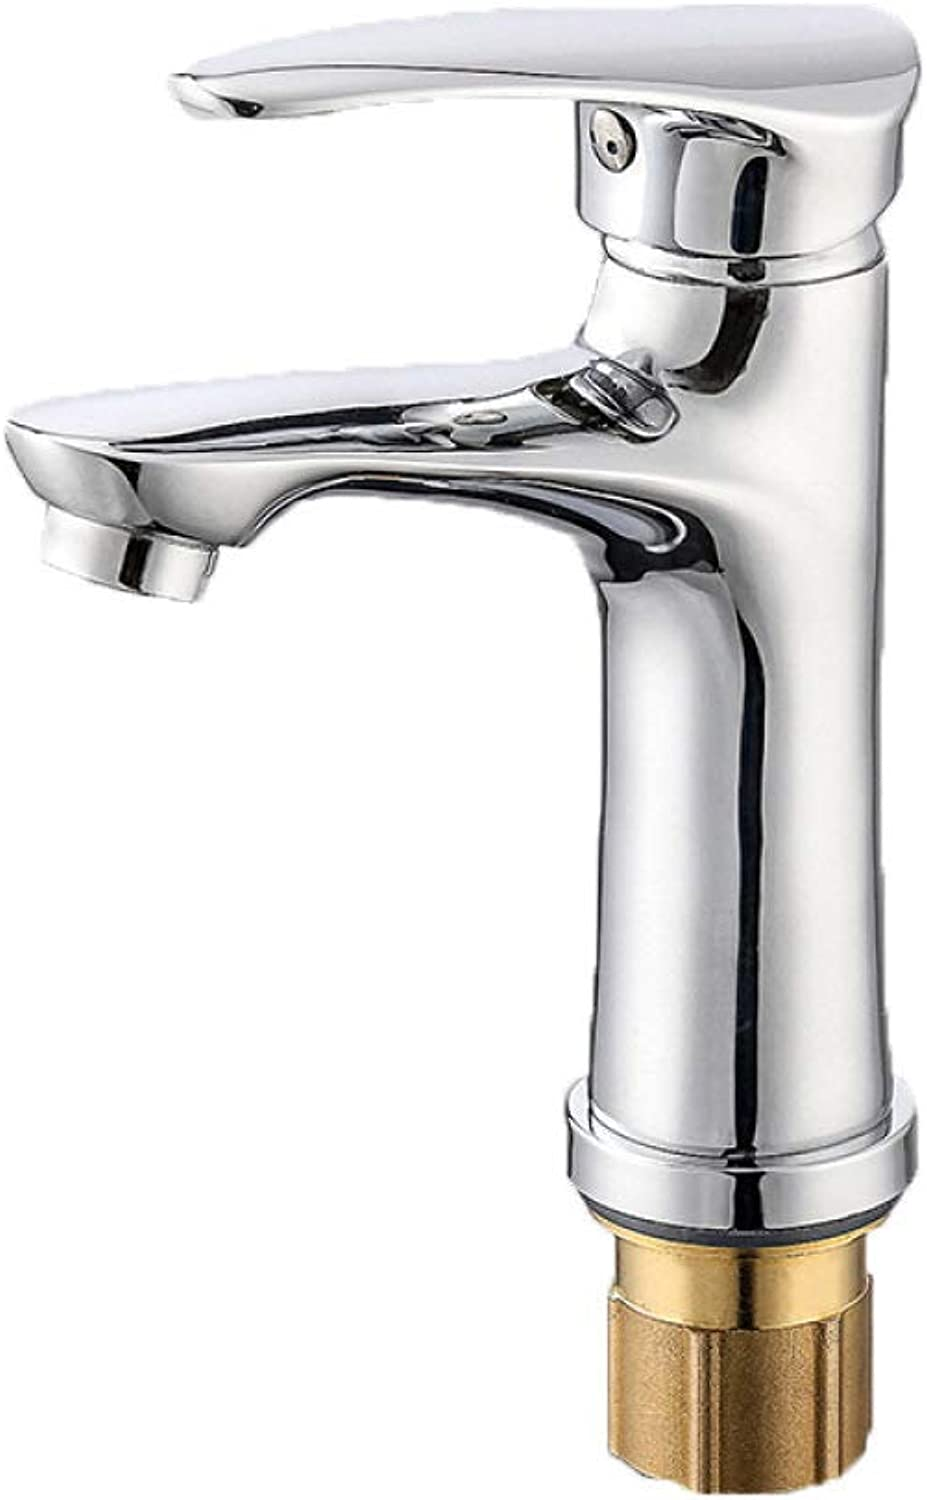 PZXY Faucet Copper Valve Body Bathroom Toilet hot and Cold Mixed Faucet washbasin Basin Single Hole Faucet 14  12  17  3  4cm